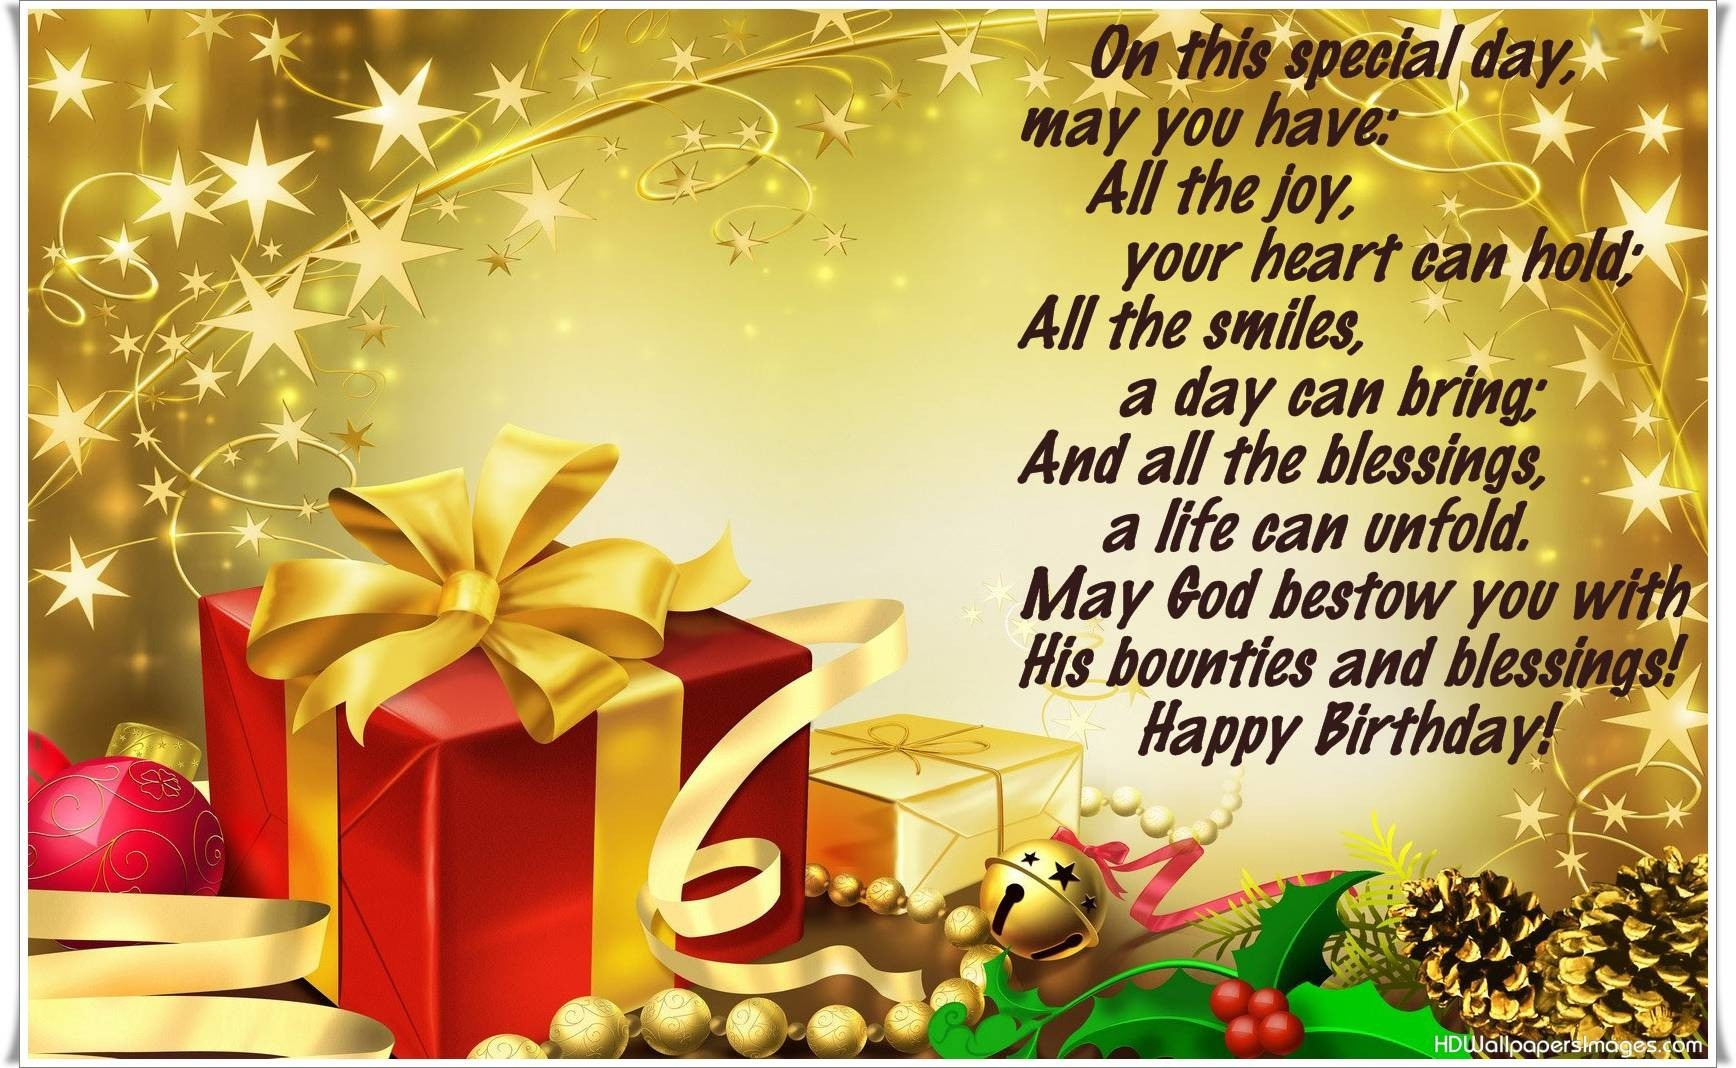 happy birthday christmas ; 100-happy-birthday-wishes-quotes-for-you-eng-news-with-christmas-for-christmas-birthday-wishes